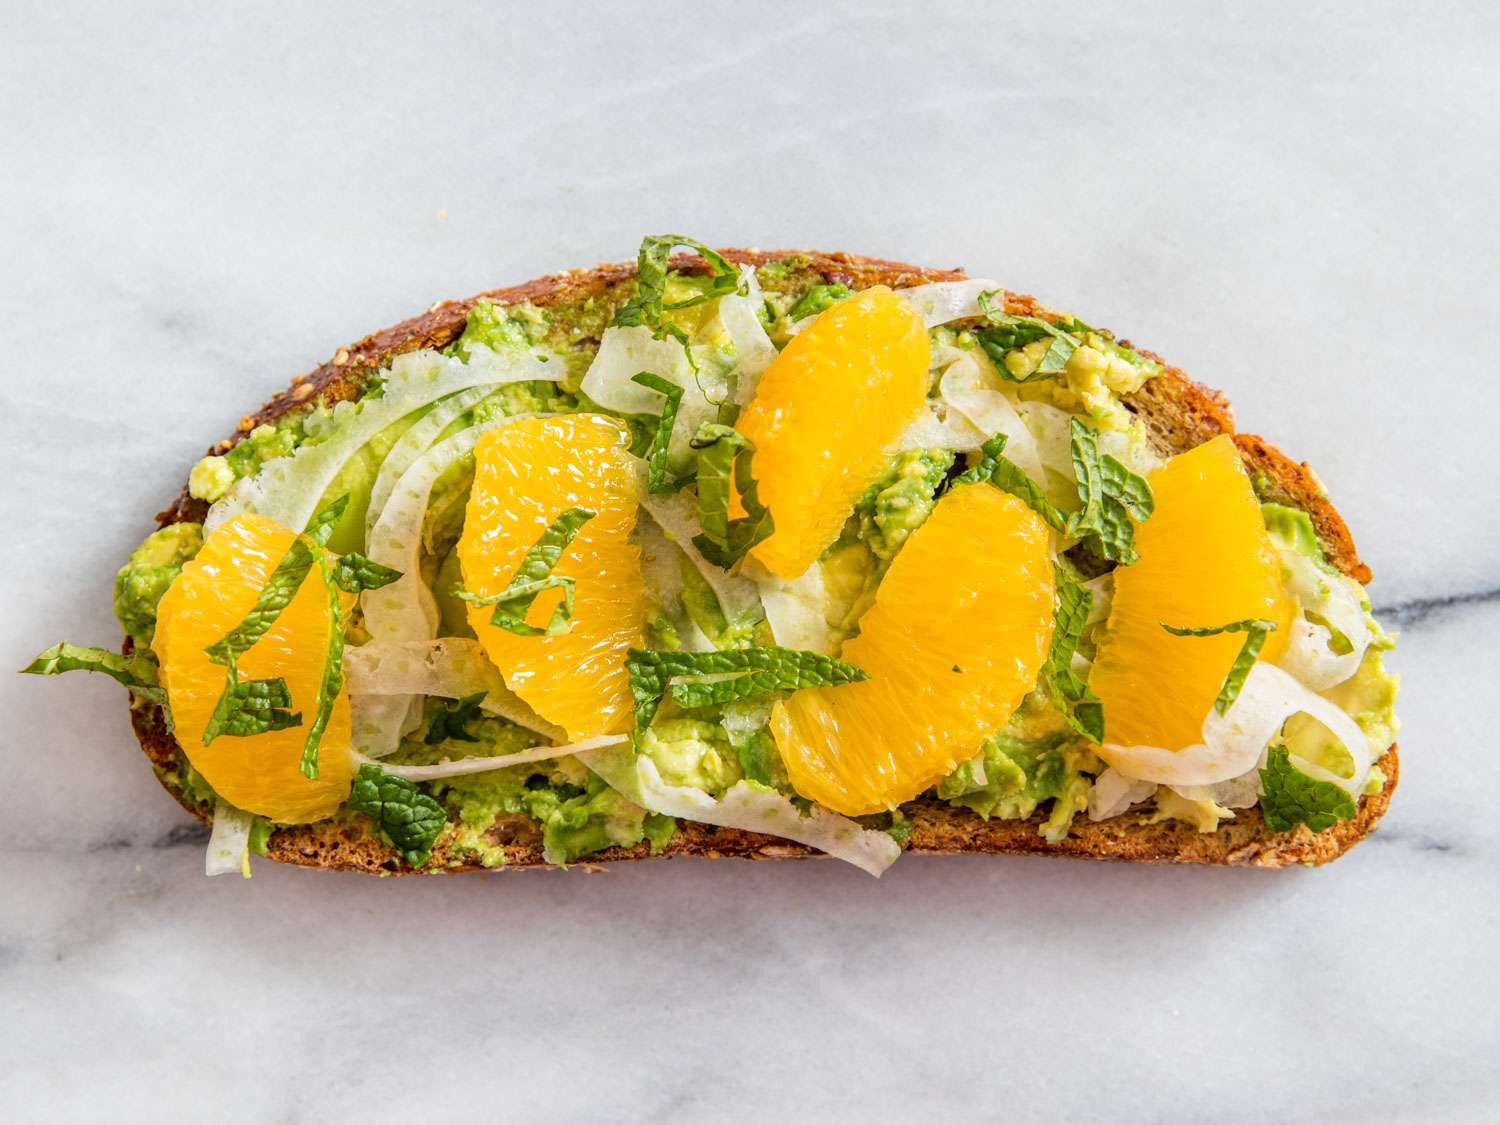 Avocado toast with orange slices and shaved fennel.